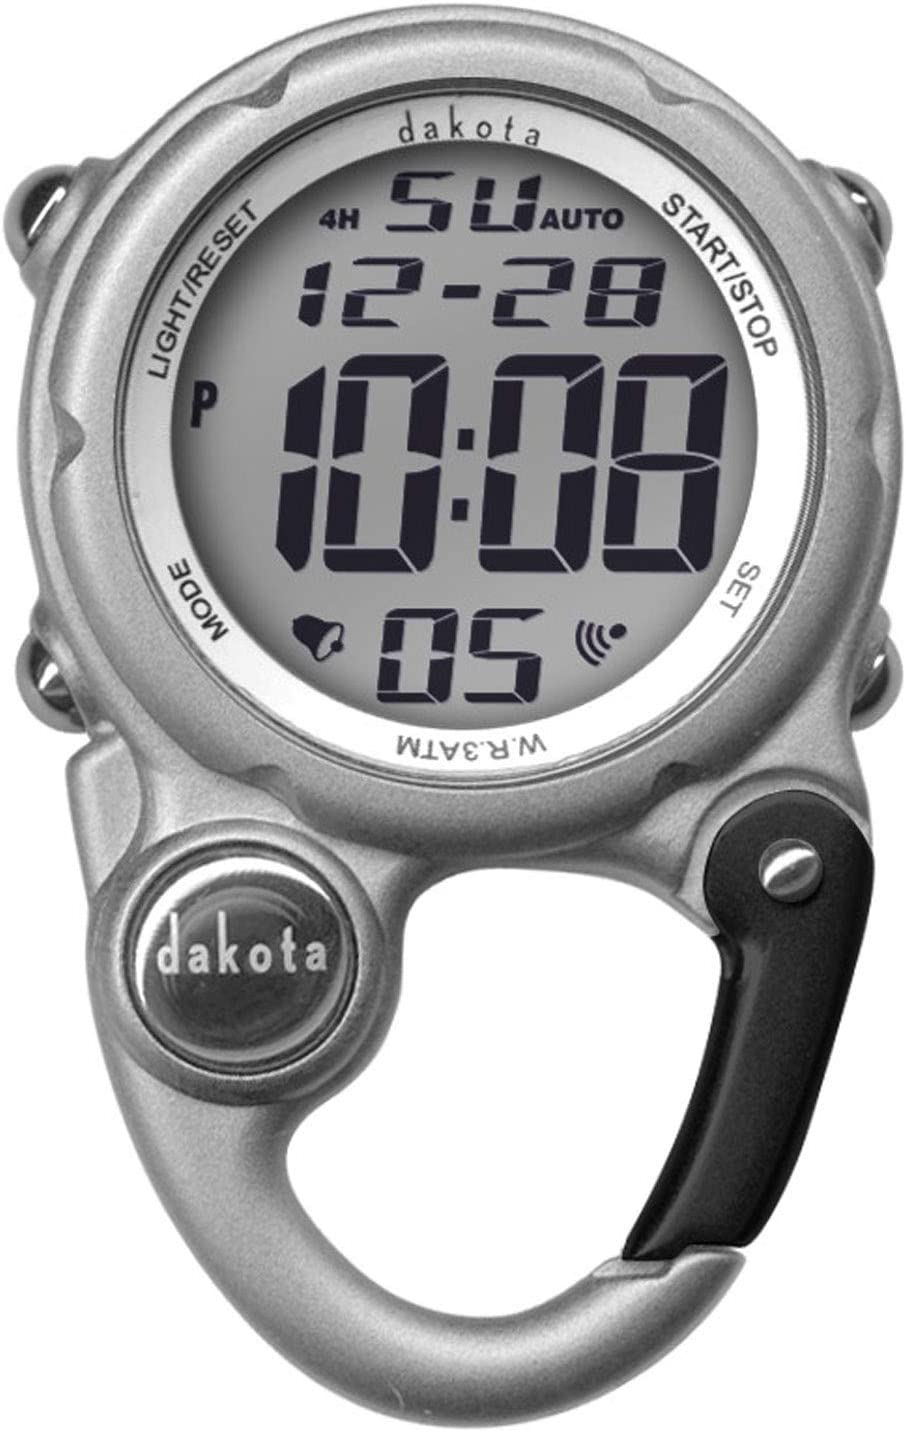 Dakota Digital Clip Mini Watch - Water Resistant - Silver